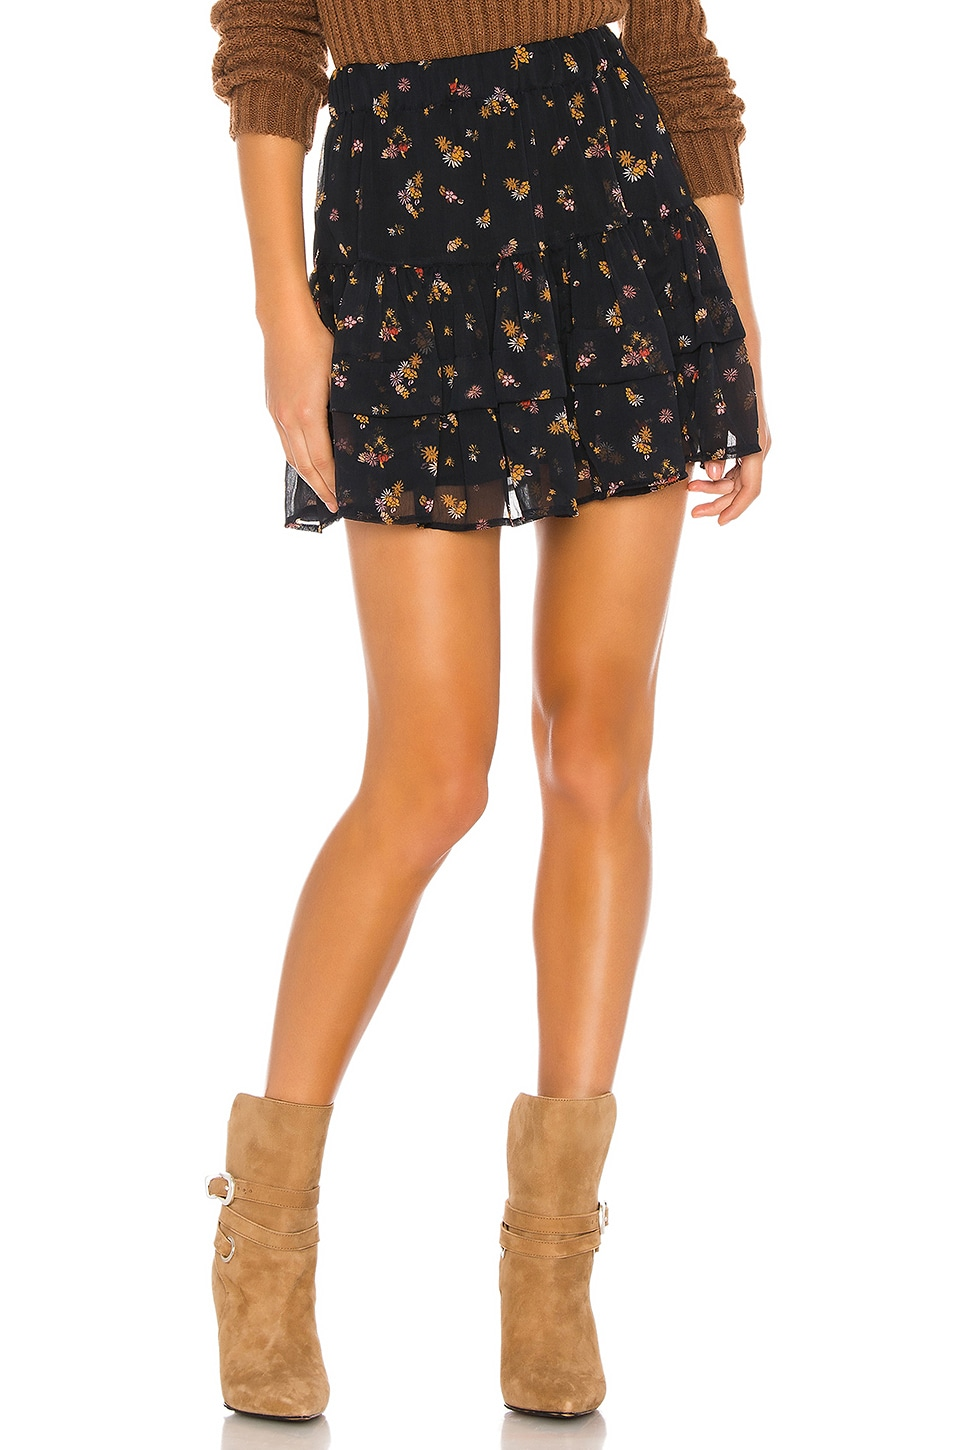 Free People From The Valley Mini Skirt in Black Combo